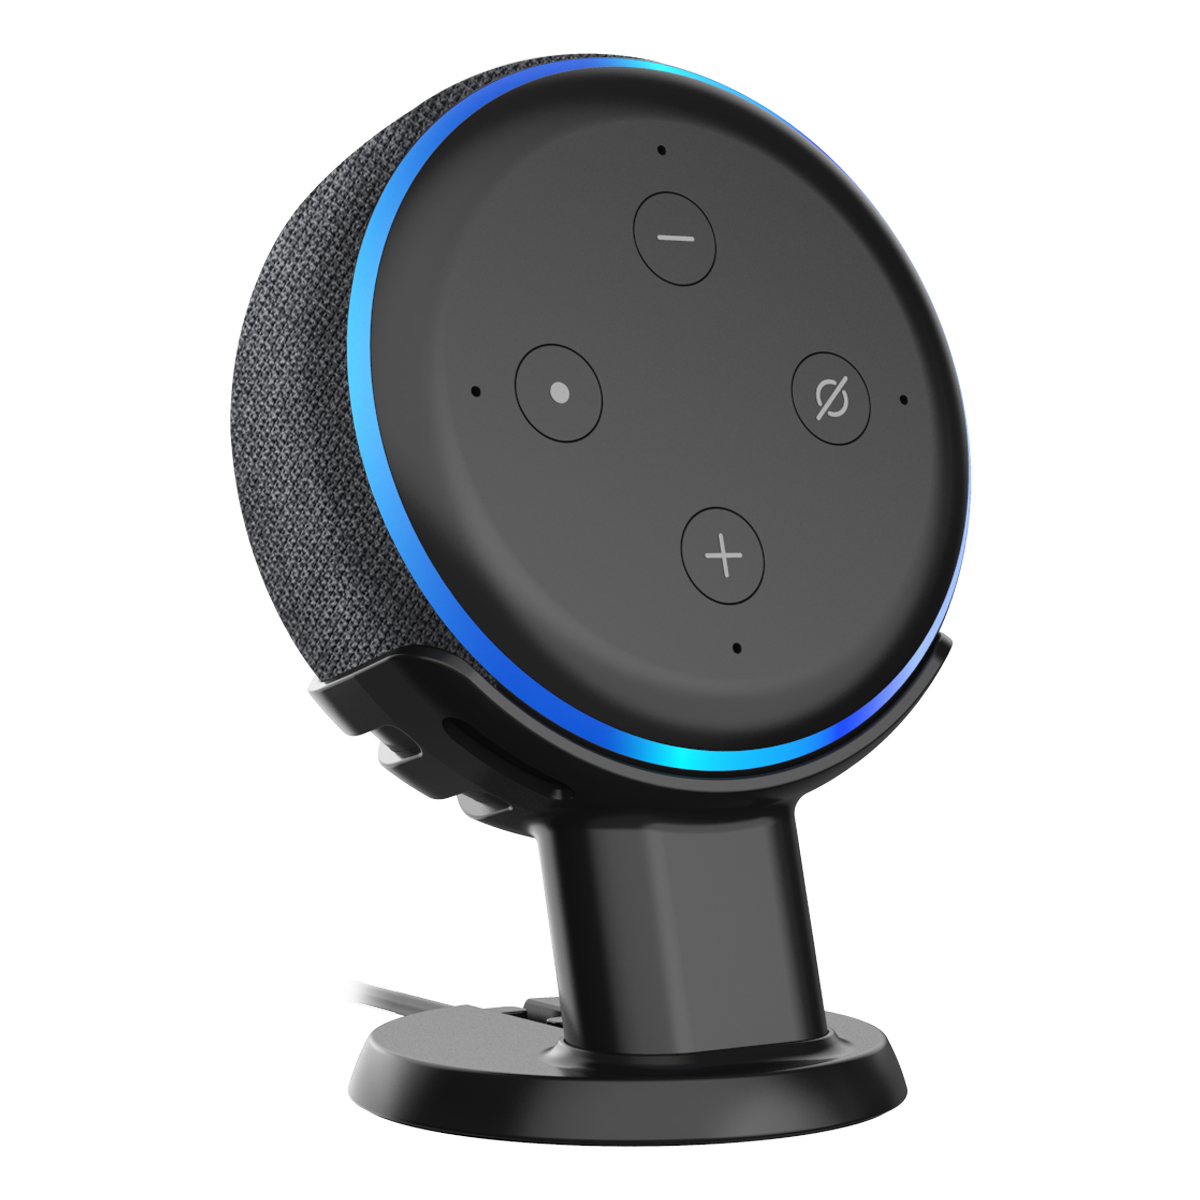 Holder Mount Stand Case For Amazon Alexa Echo Dot 3rd generation Mount Stand work with Amazon Echo Dot 3 Assistant Stand